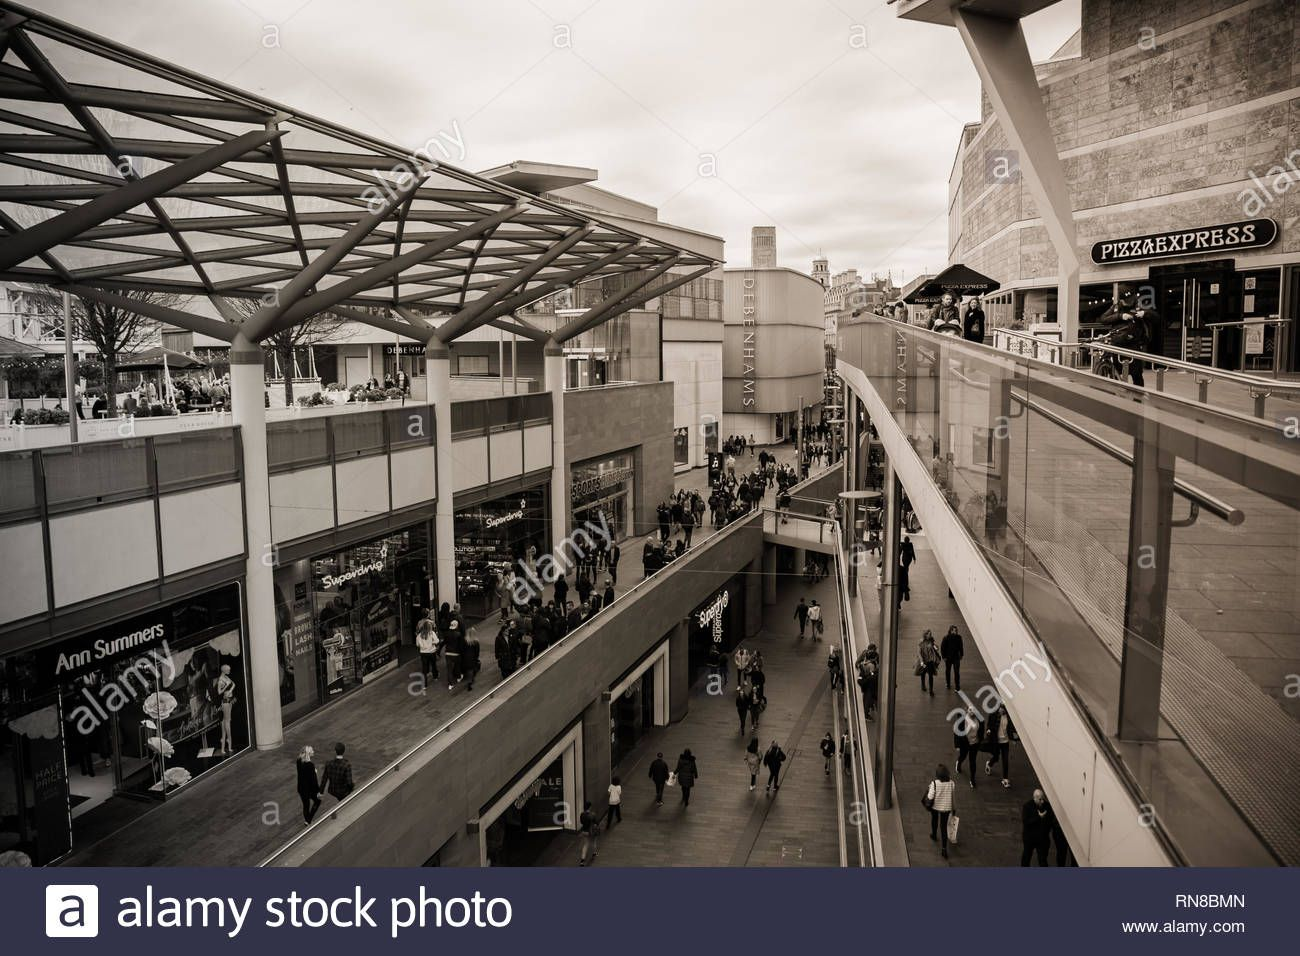 Download This Stock Image Liverpool Street Photography